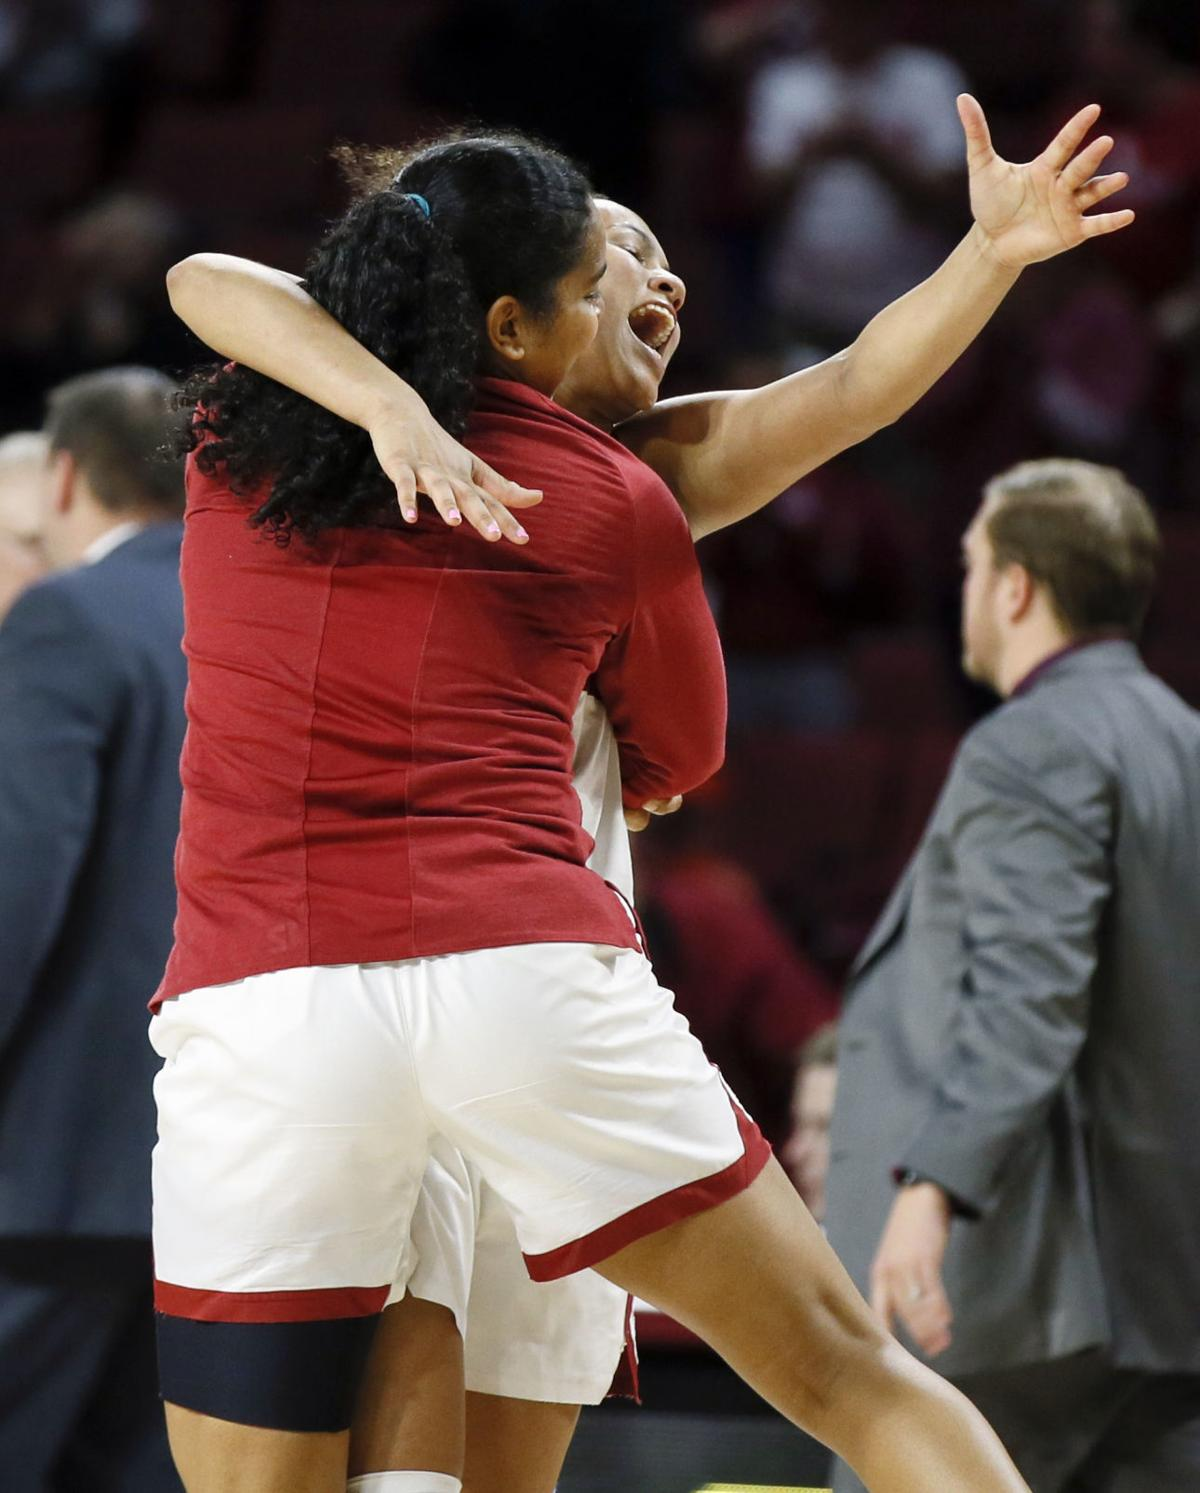 OU OSU BEDLAM WOMEN'S BASKETBALL